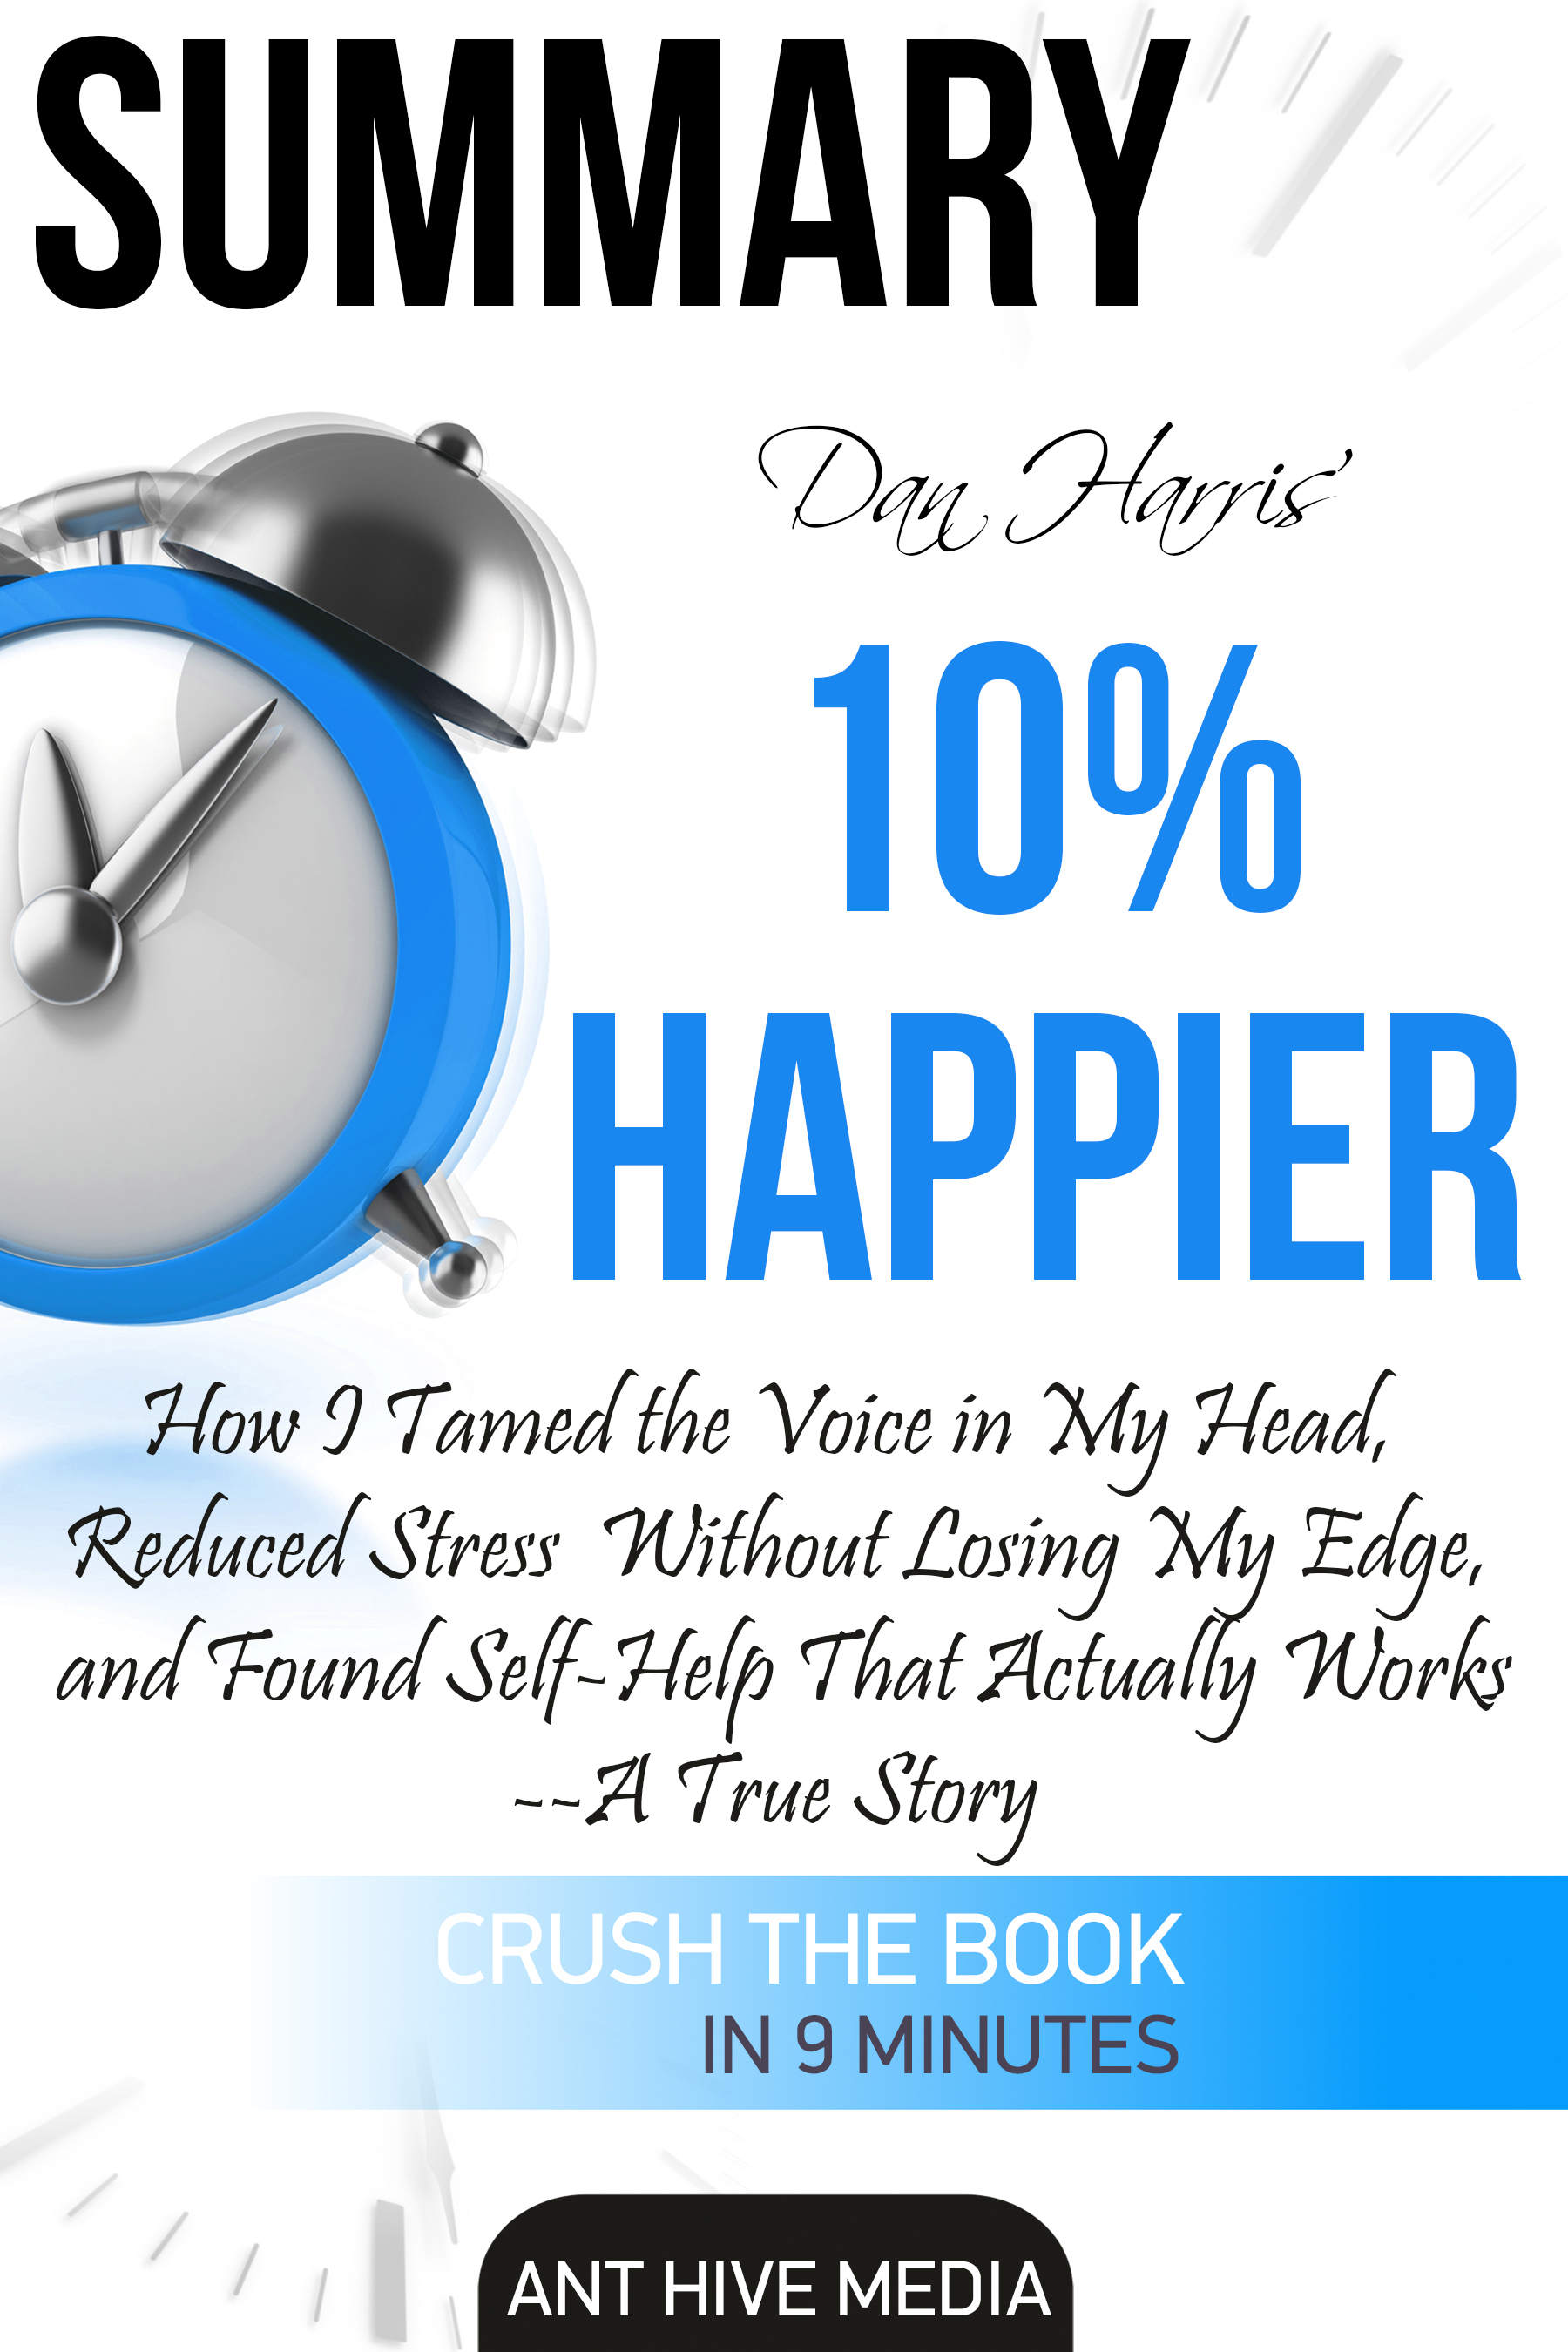 Dan Harris' 10% Happier: How I Tamed The Voice in My Head, Reduced Stress Without Losing My Edge, And Found Self-Help That Actually Works - A True Story | Summary